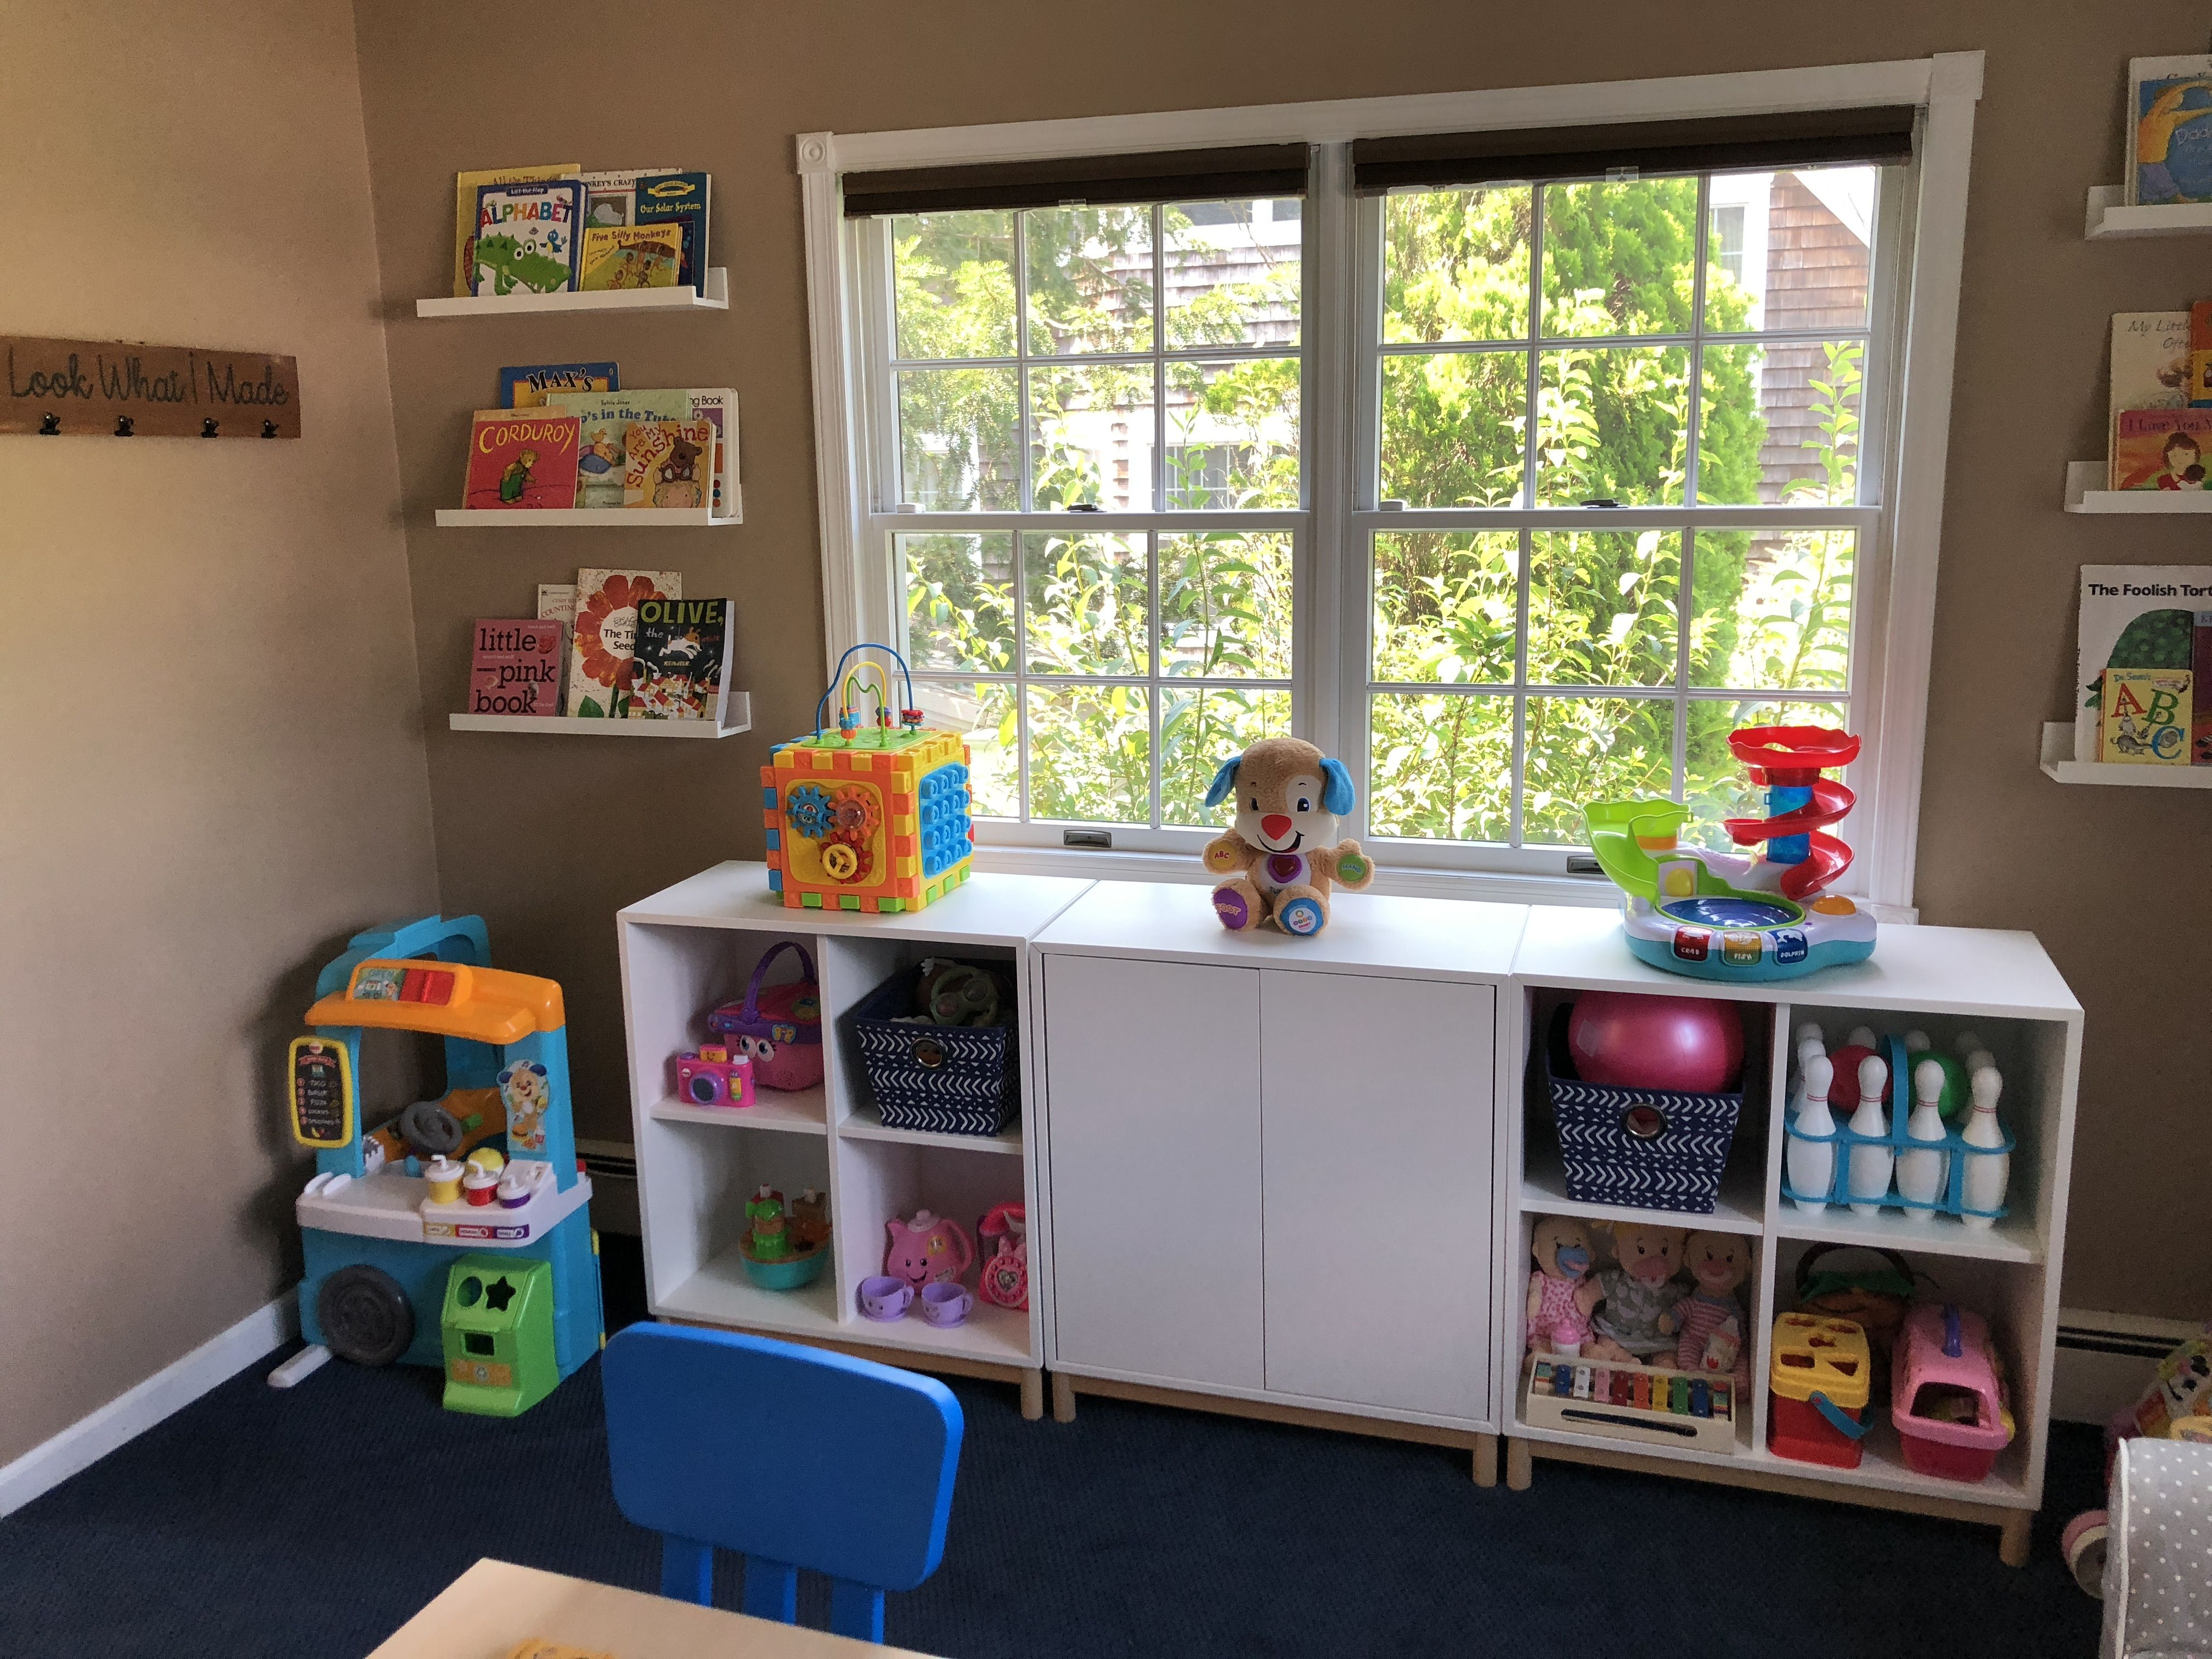 Ikea Picture Shelves And Ikea Eket For Toy Storage | Home